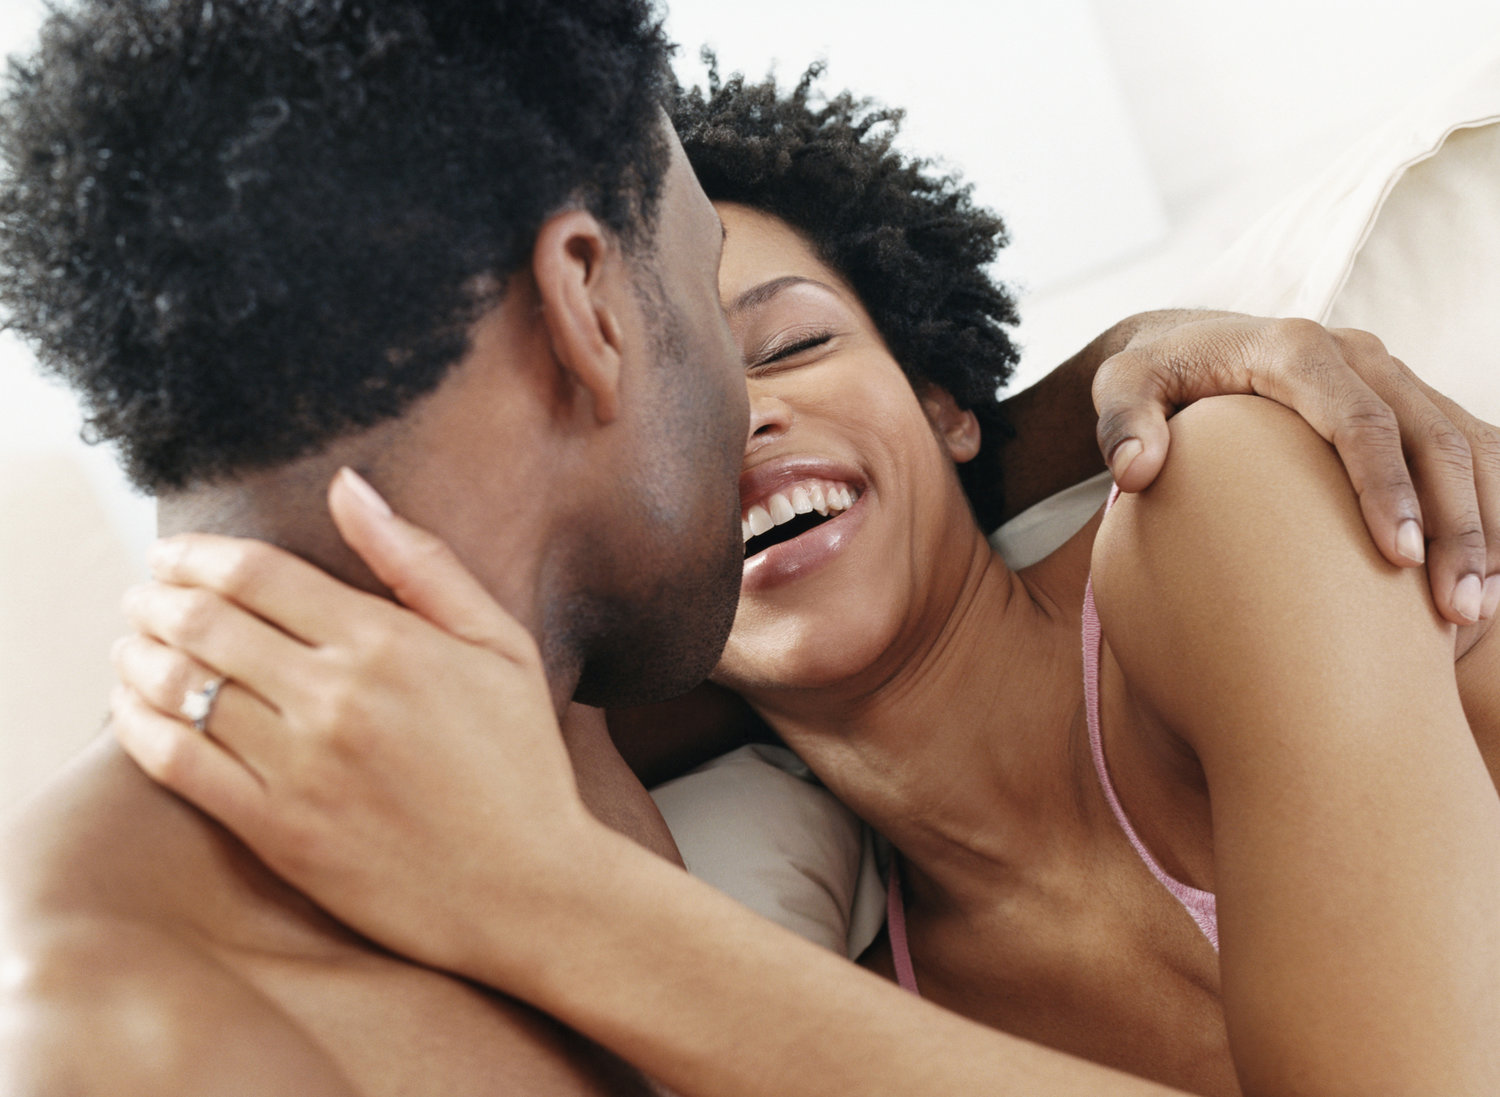 Ask about our Sex & Intimacy Intensives - We offer private intensives to help you & your partner develop the emotional security, communication skills and interpersonal understanding needed to have intimate and connected sex.